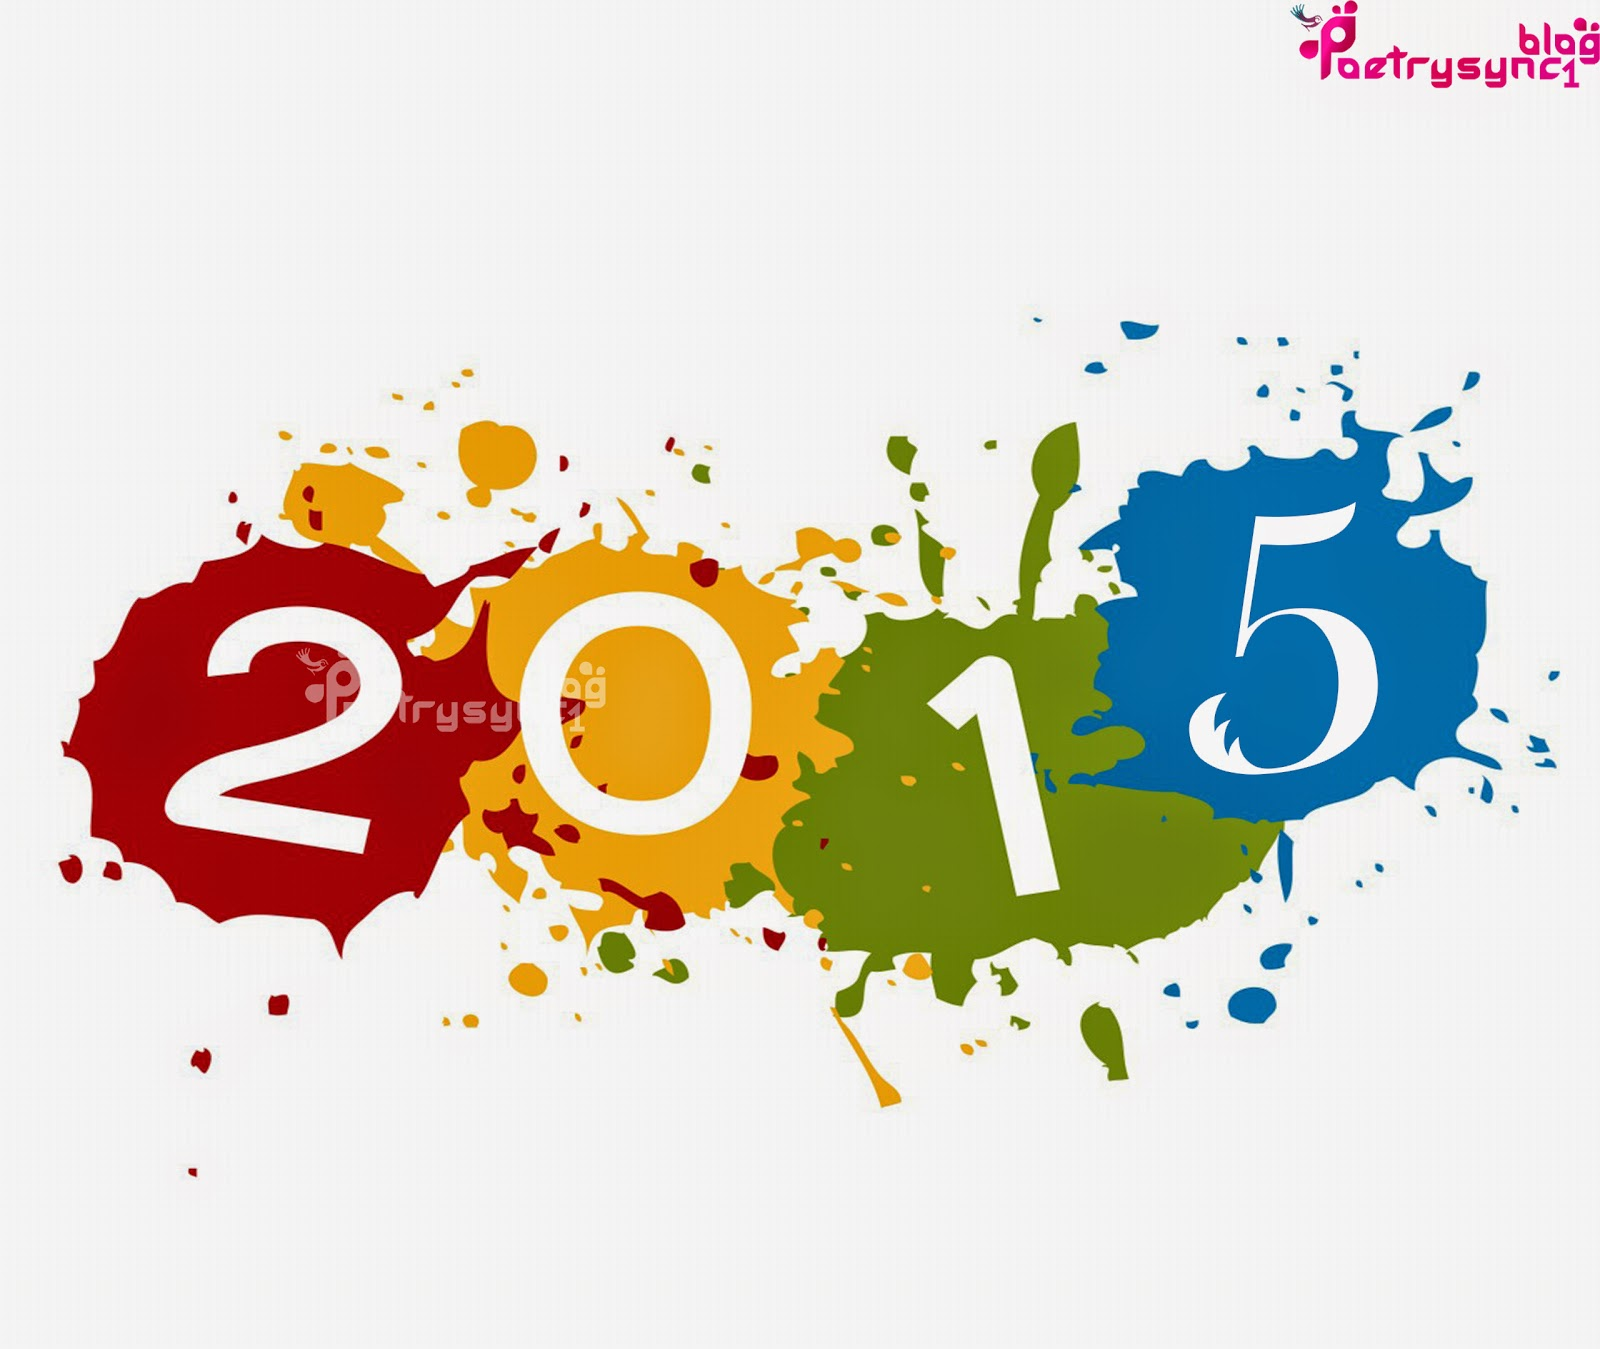 Happy New Year 2015 3d Wallpaper Wishes With Messages Greetings